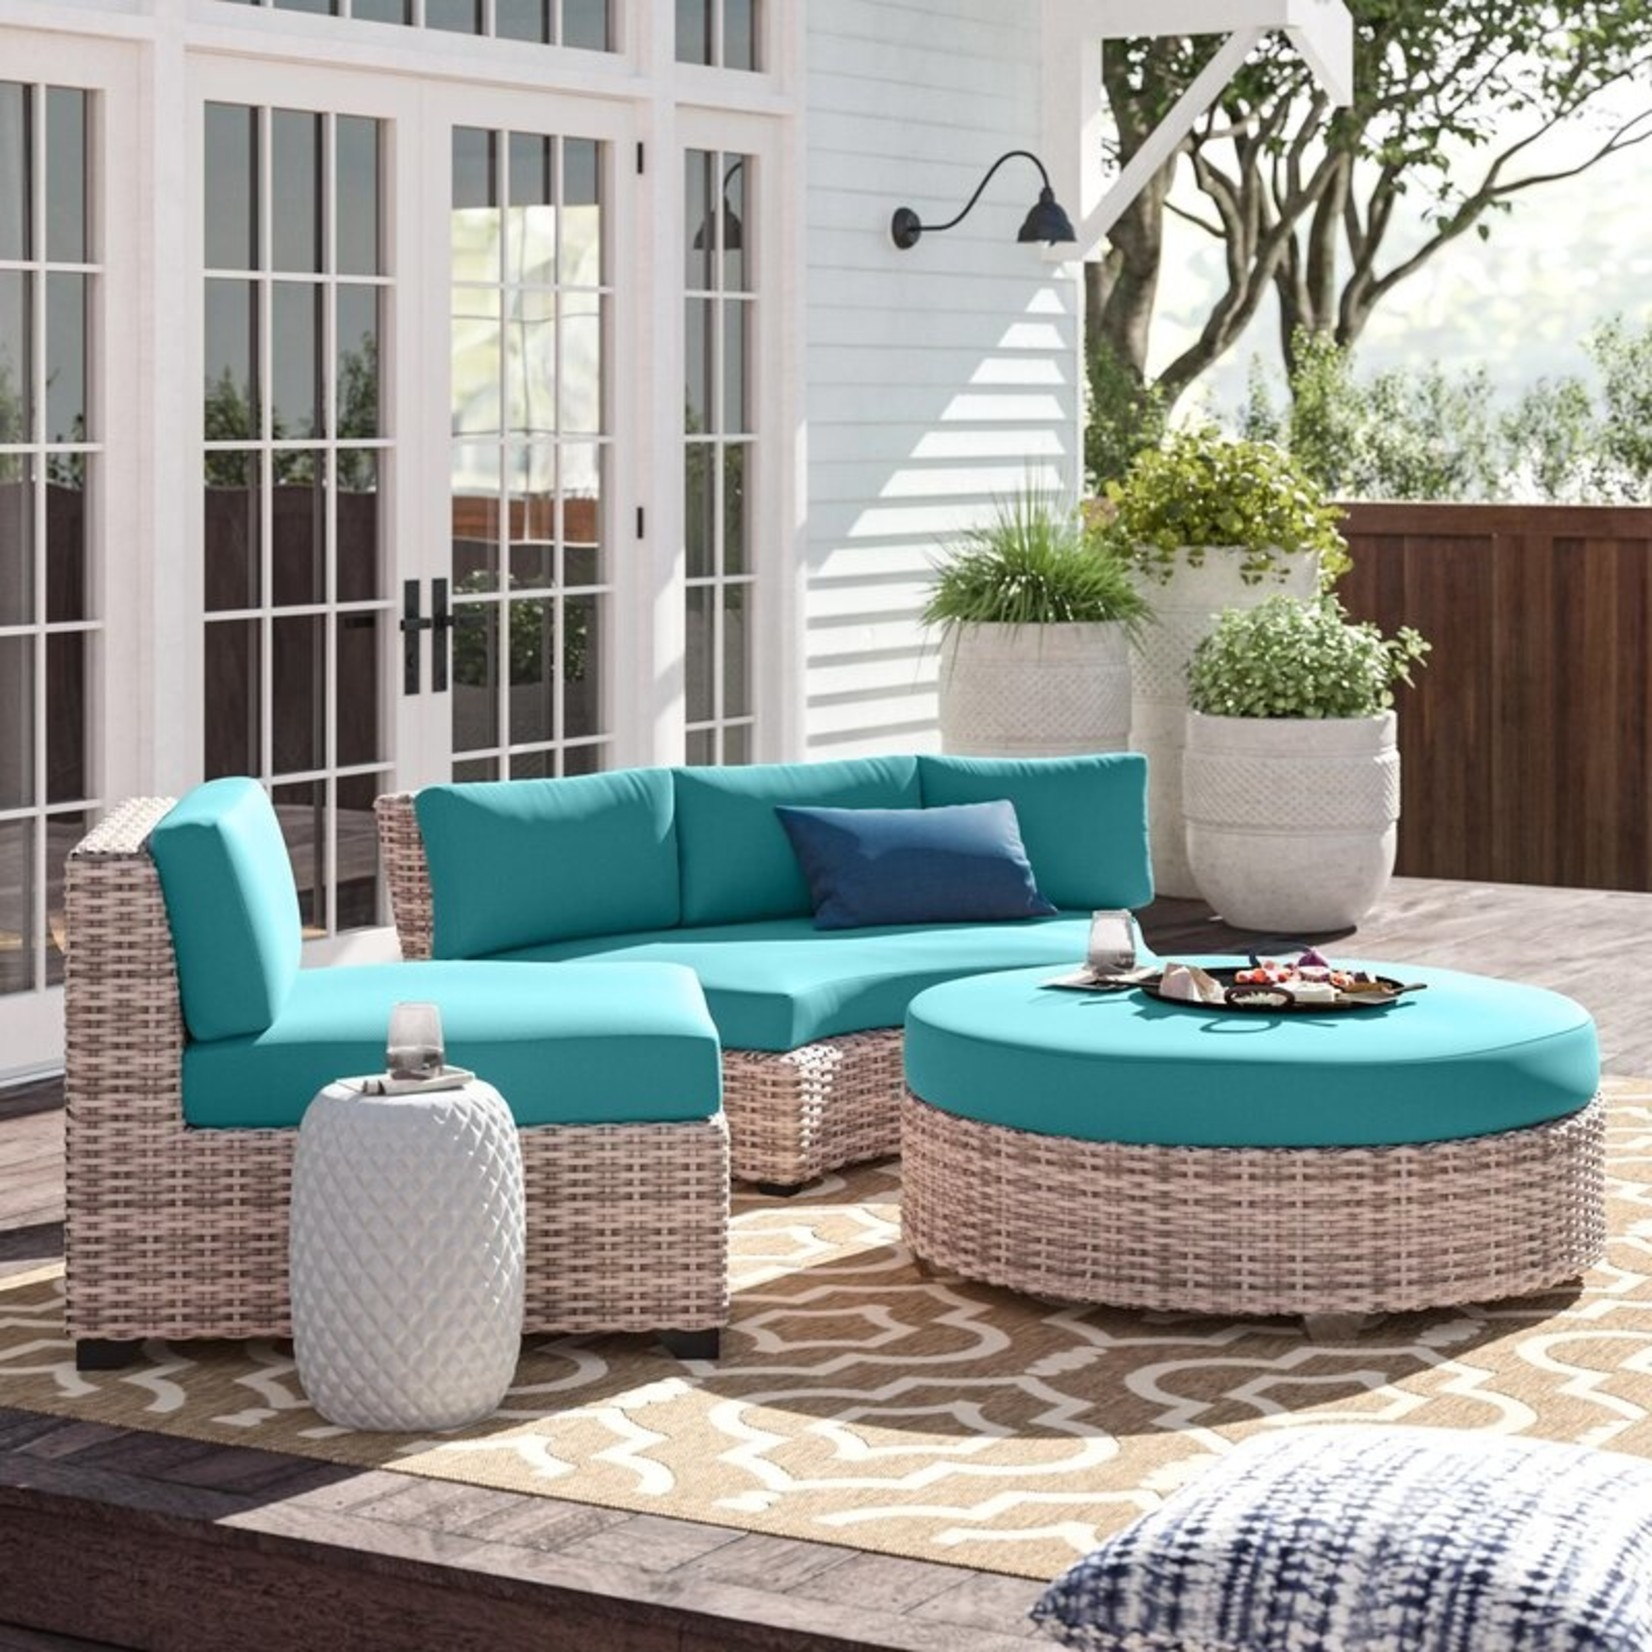 *Merlyn Indoor/Outdoor Cushion Cover - Aruba - Covers Only - Final Sale